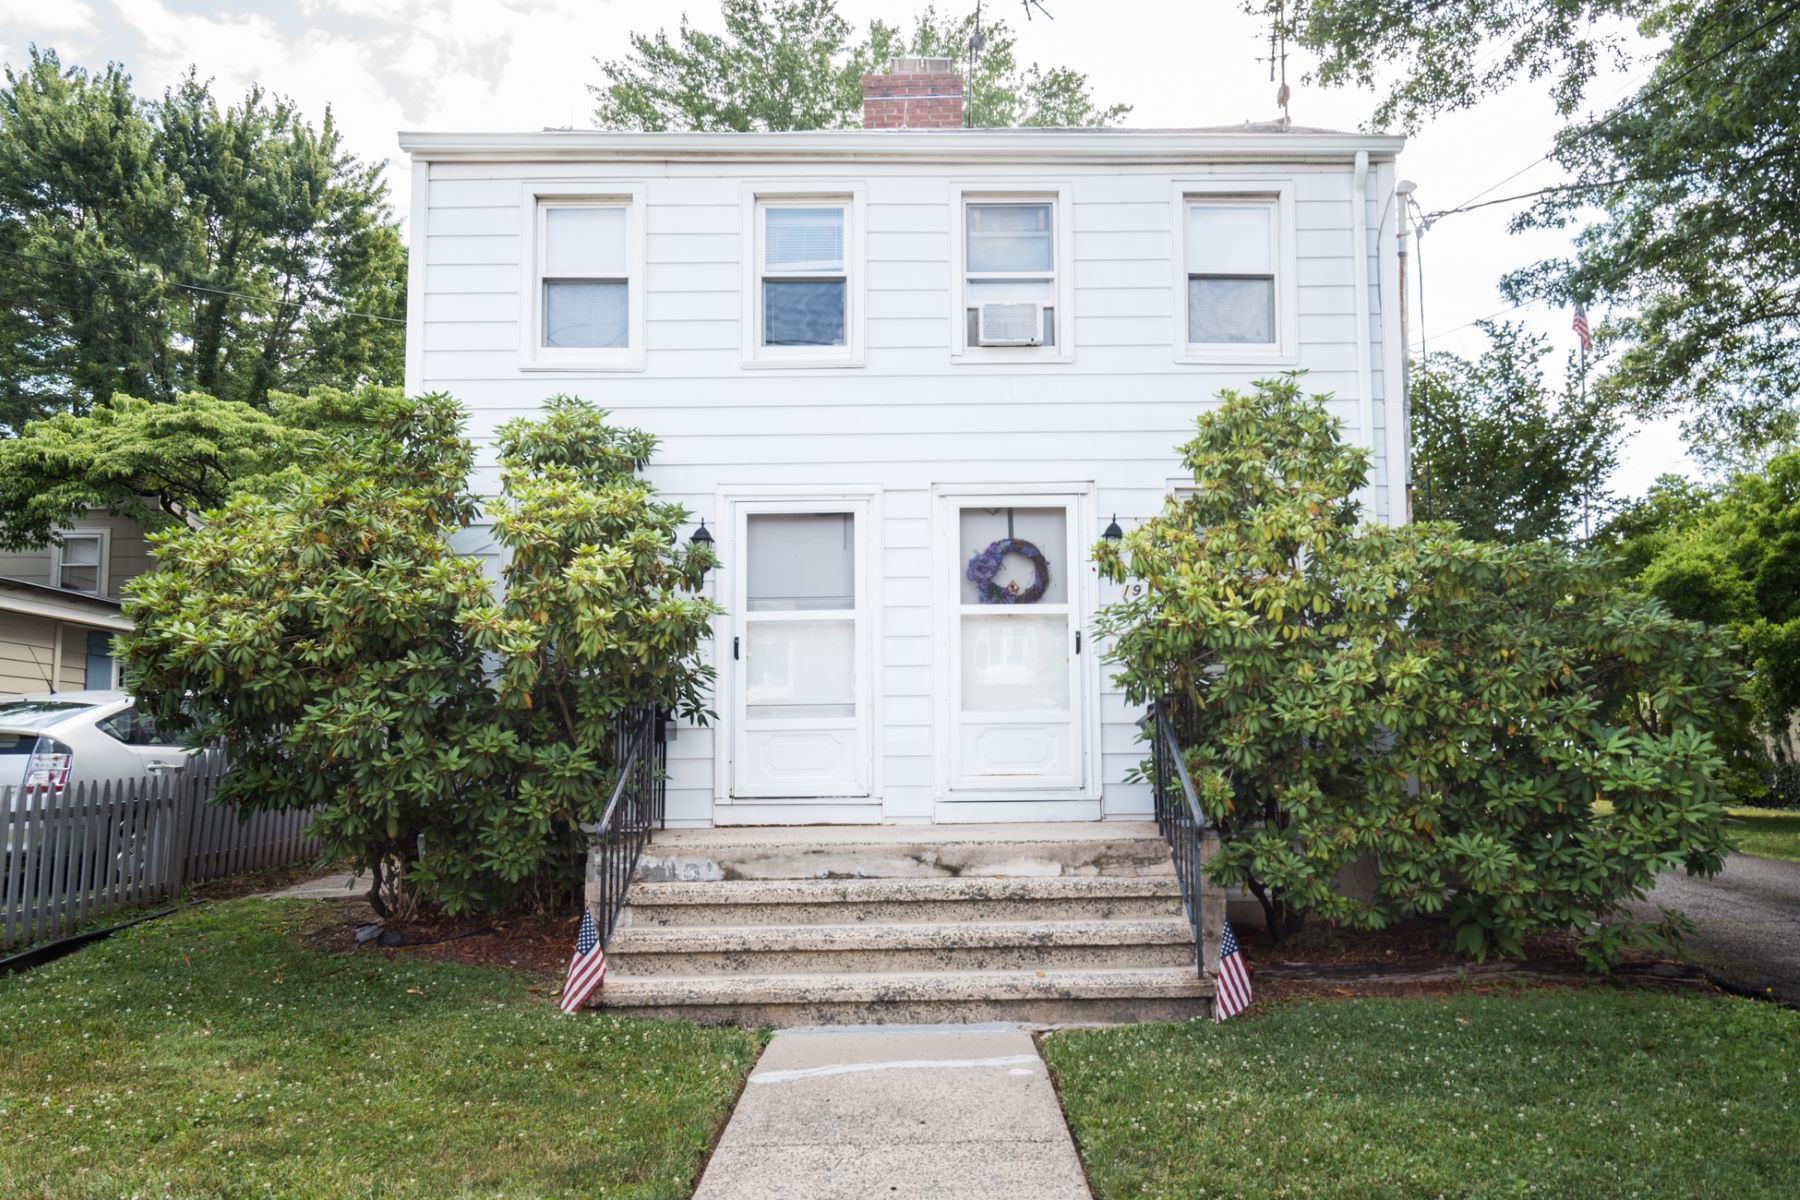 Single Family Home for Sale at Home And Income 17-19 Burd Street Pennington, New Jersey 08534 United States